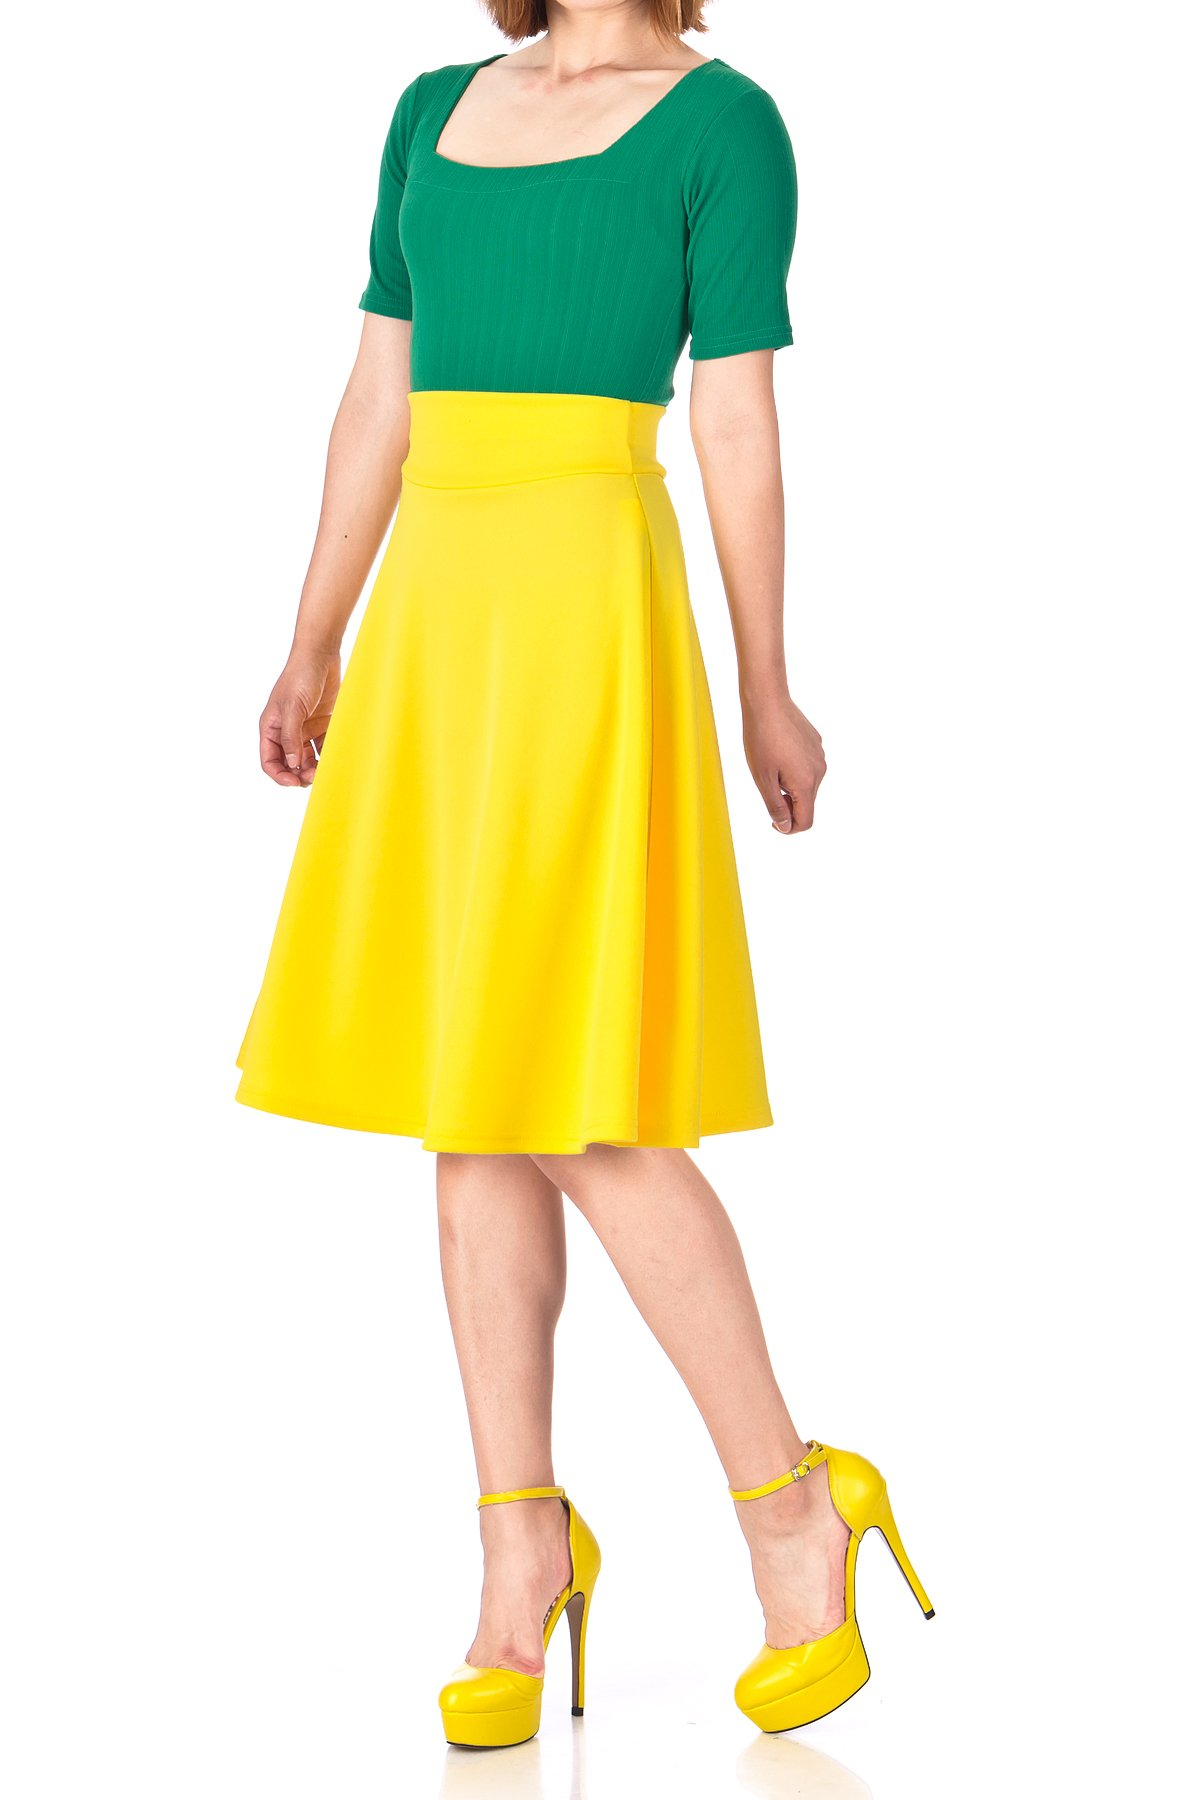 Stunning Wide High Waist A line Full Flared Swing Office Dance Party Casual Circle Skater Midi Skirt Yellow 03